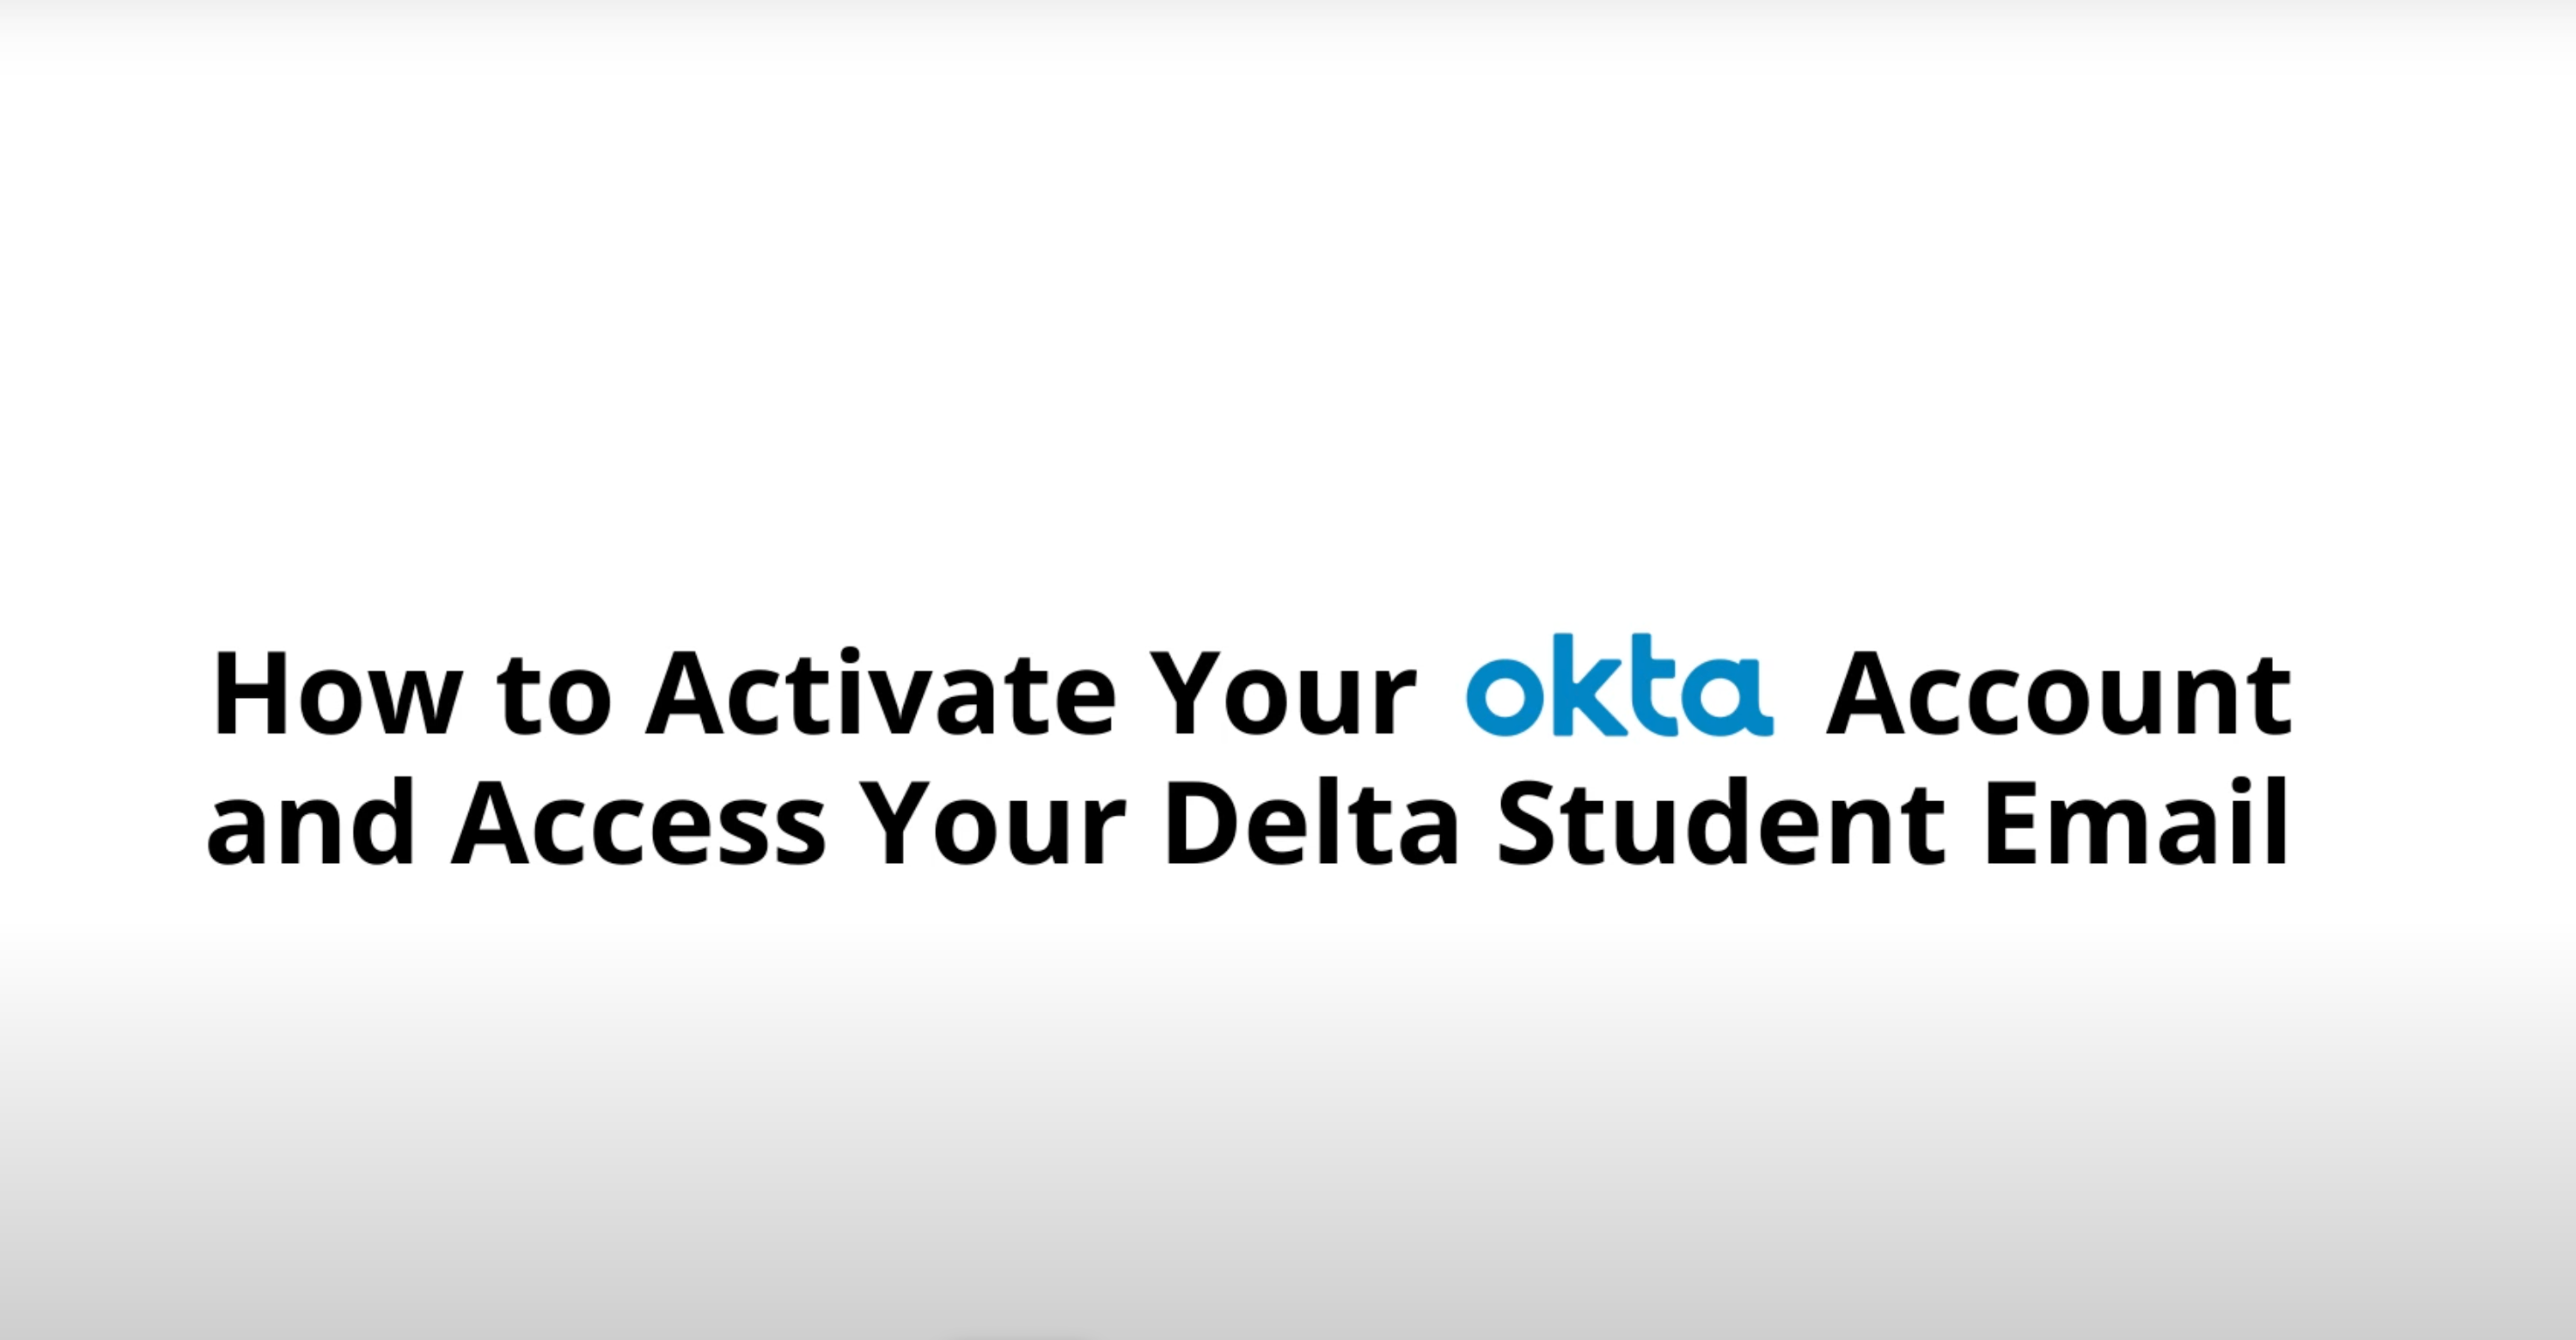 how to activate your okta account